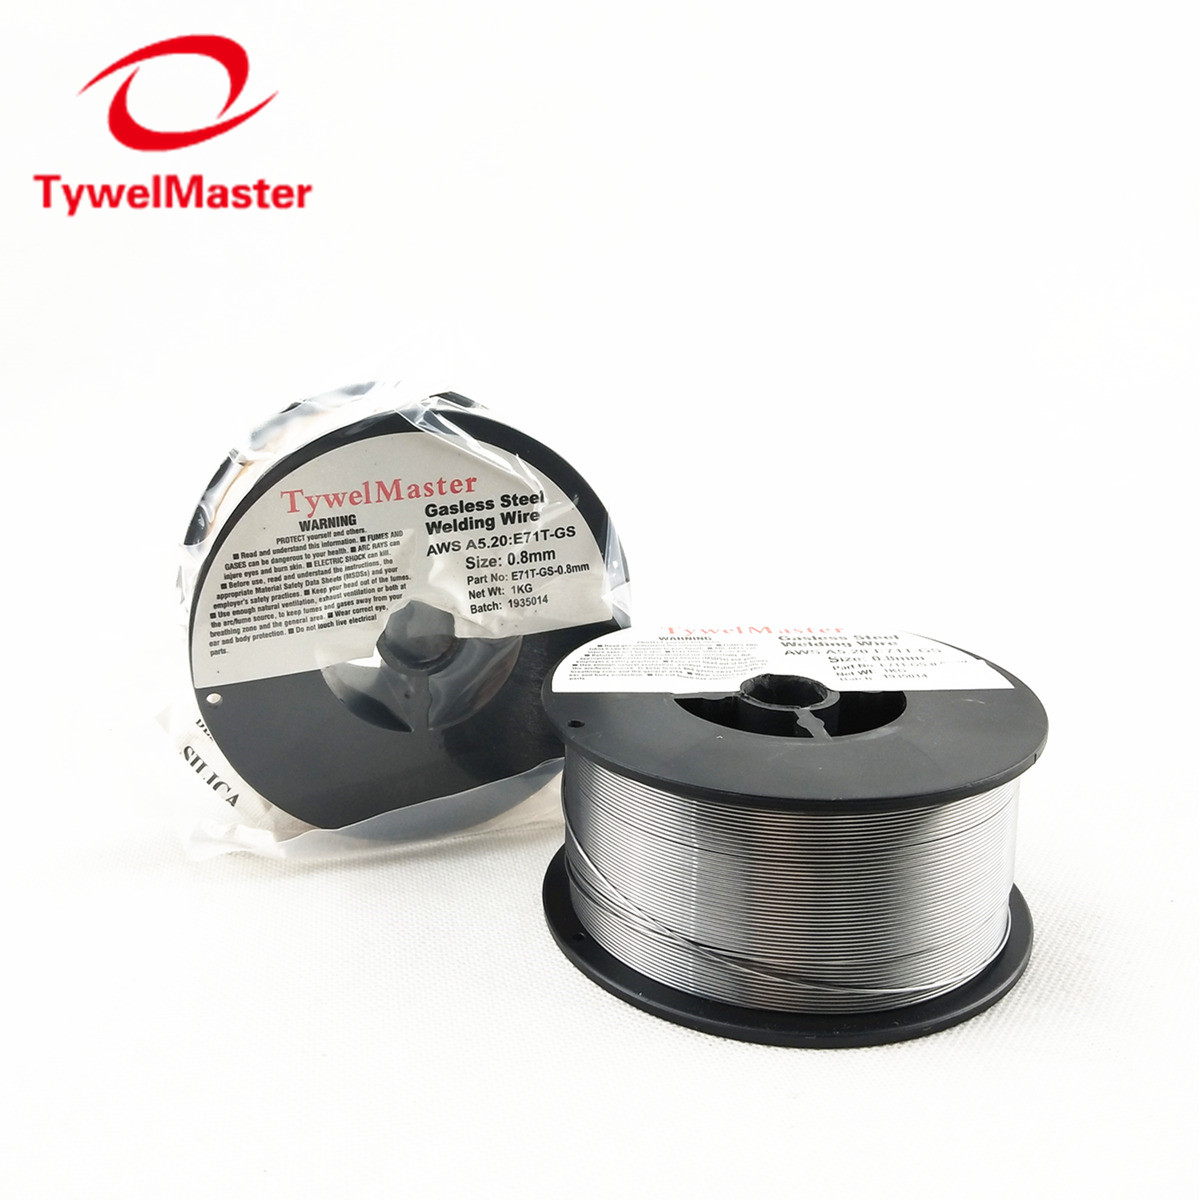 Flux Cord Welding Wire Gasless E71T-GS ASW A5.20 0.9mm 0.8mm 1KG Spool No Gas Steel Welding Wire For Without Gas MIG Welder